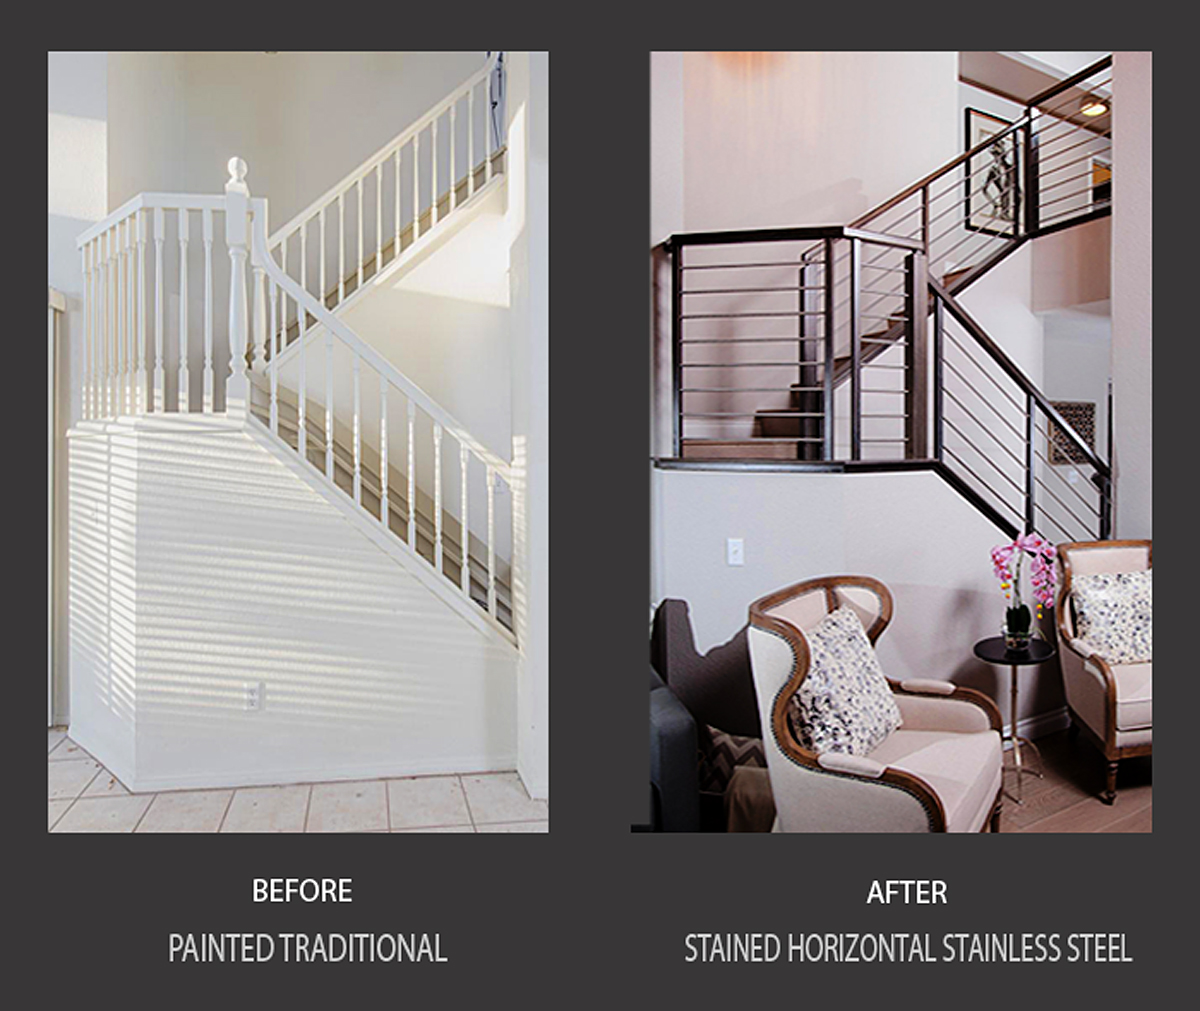 Nevada Stairs Horizontal Stainless Steel Staircase Railing Before And Afters For Hgtv S Brother Vs